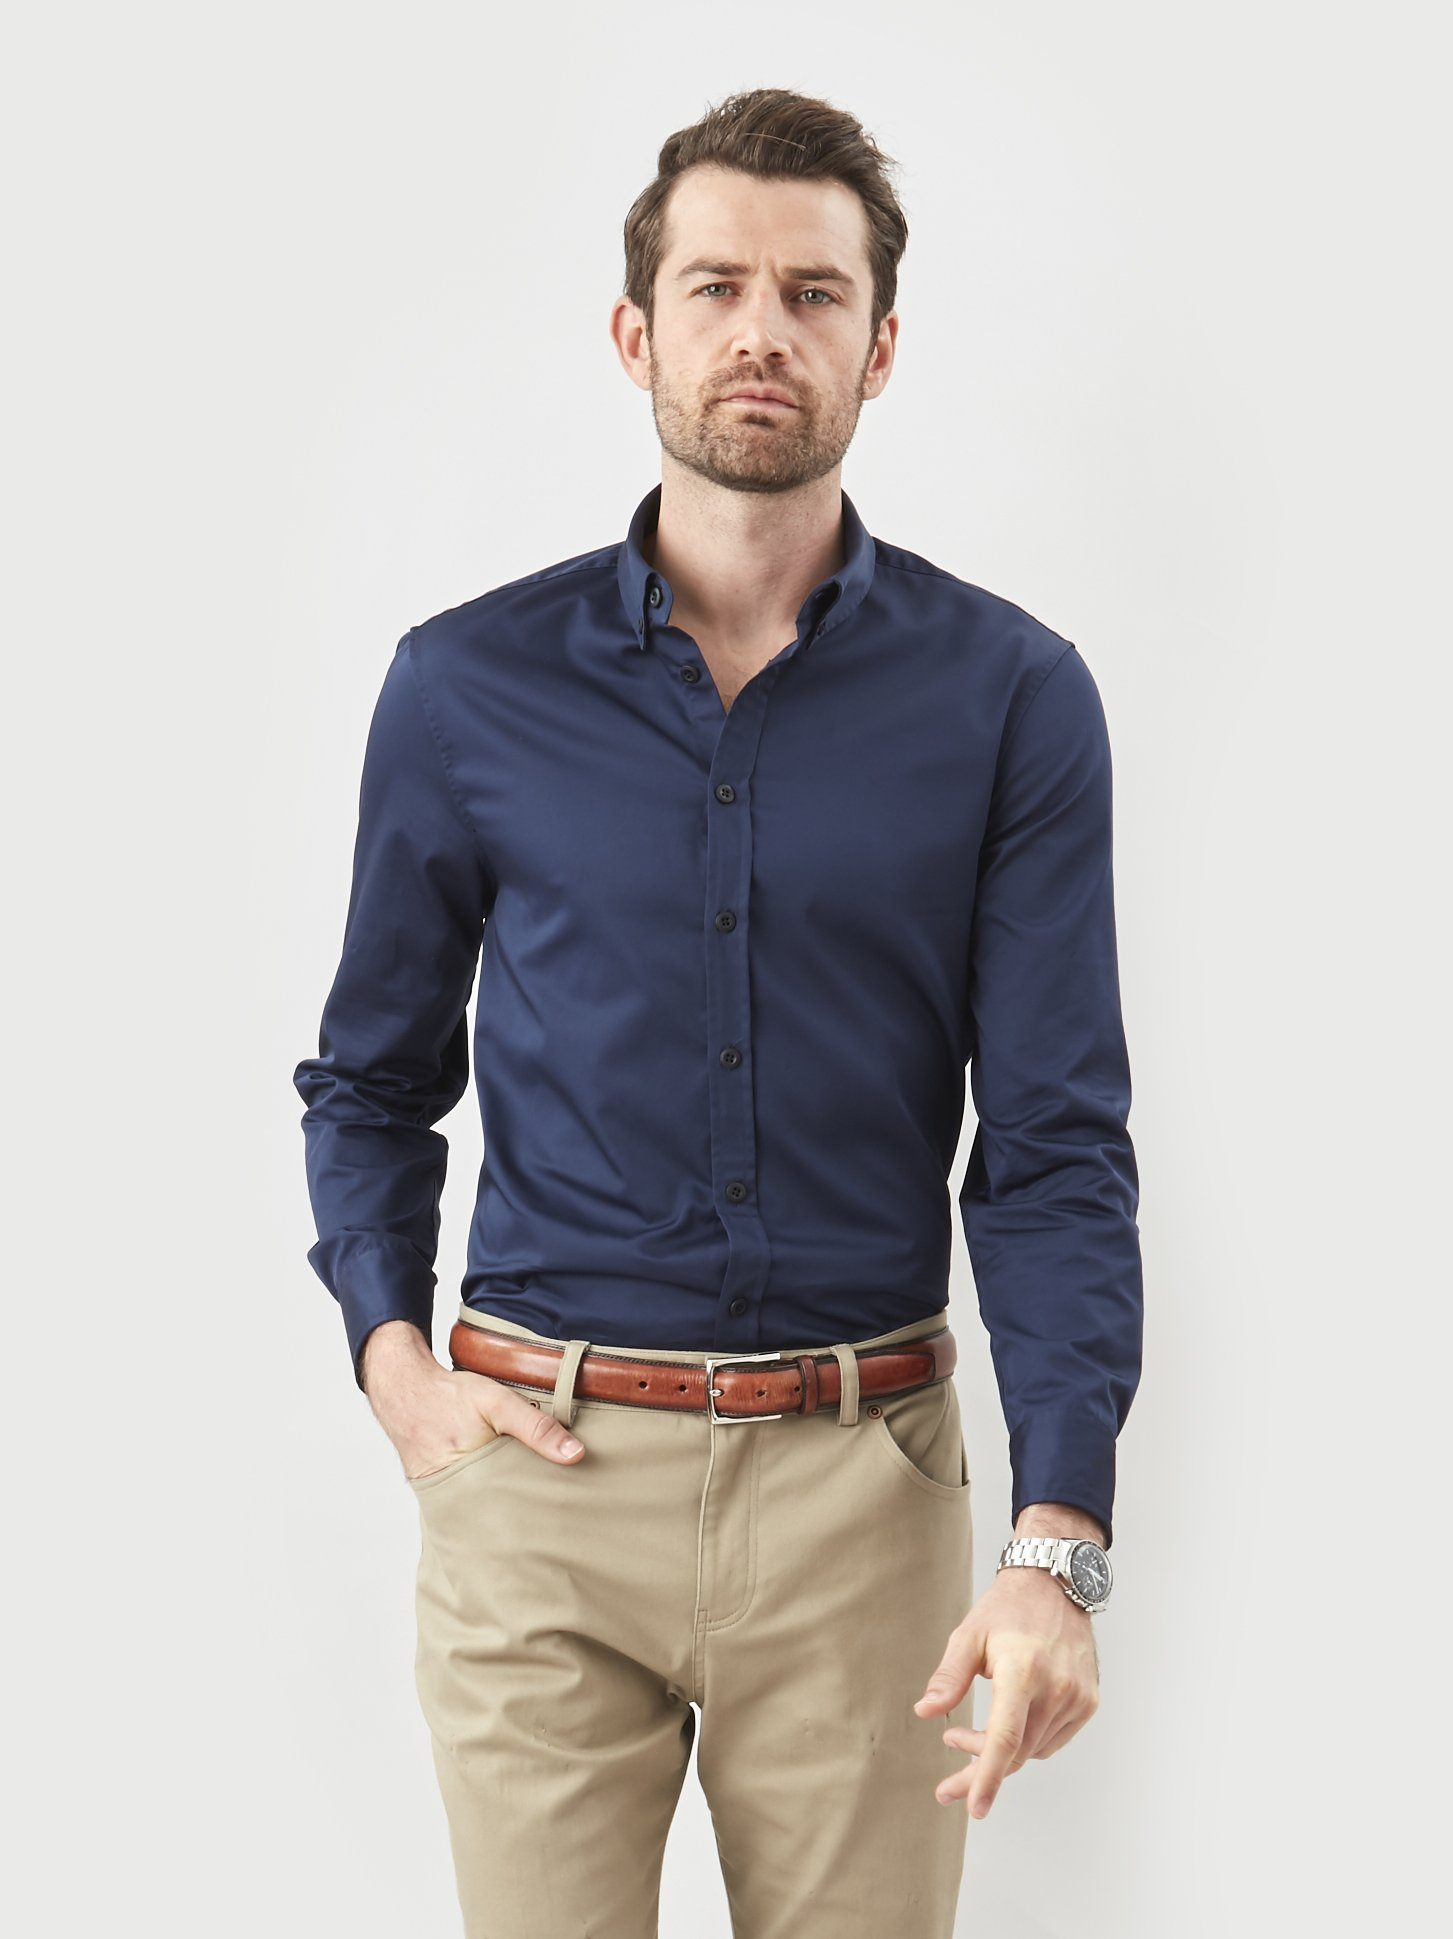 khakis and button down shirt